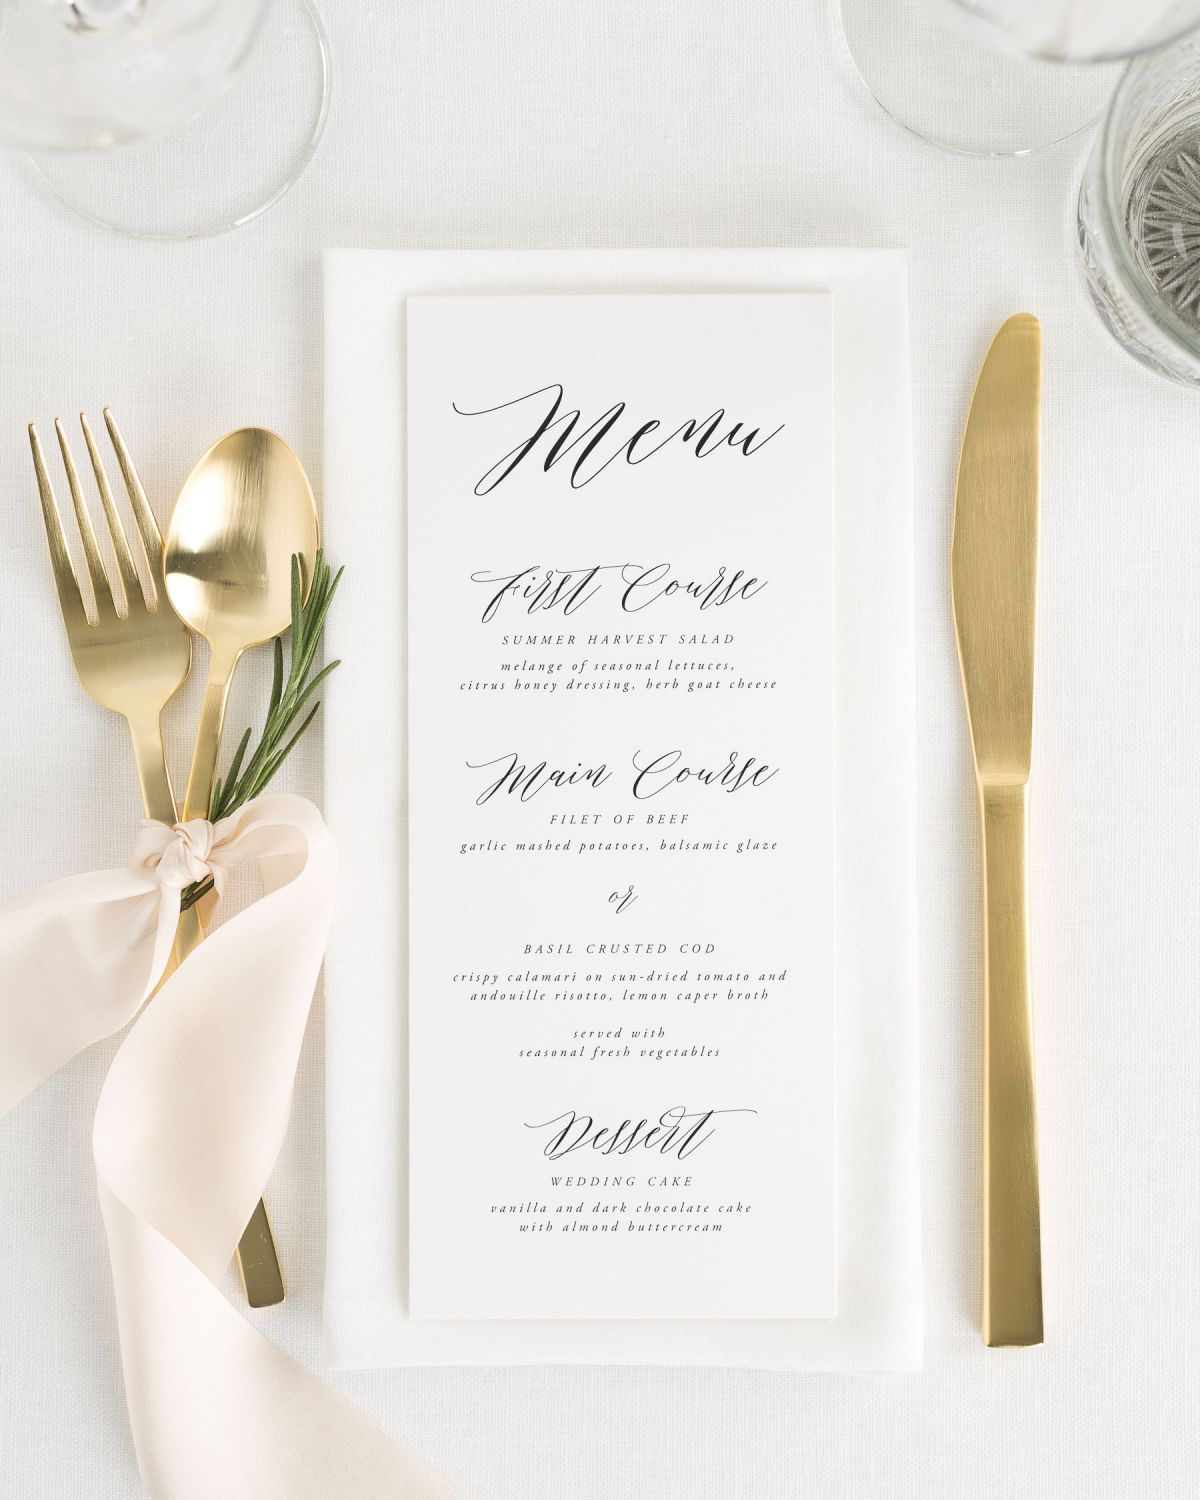 Simple Wedding Menus with Greenery and Gold Flatware